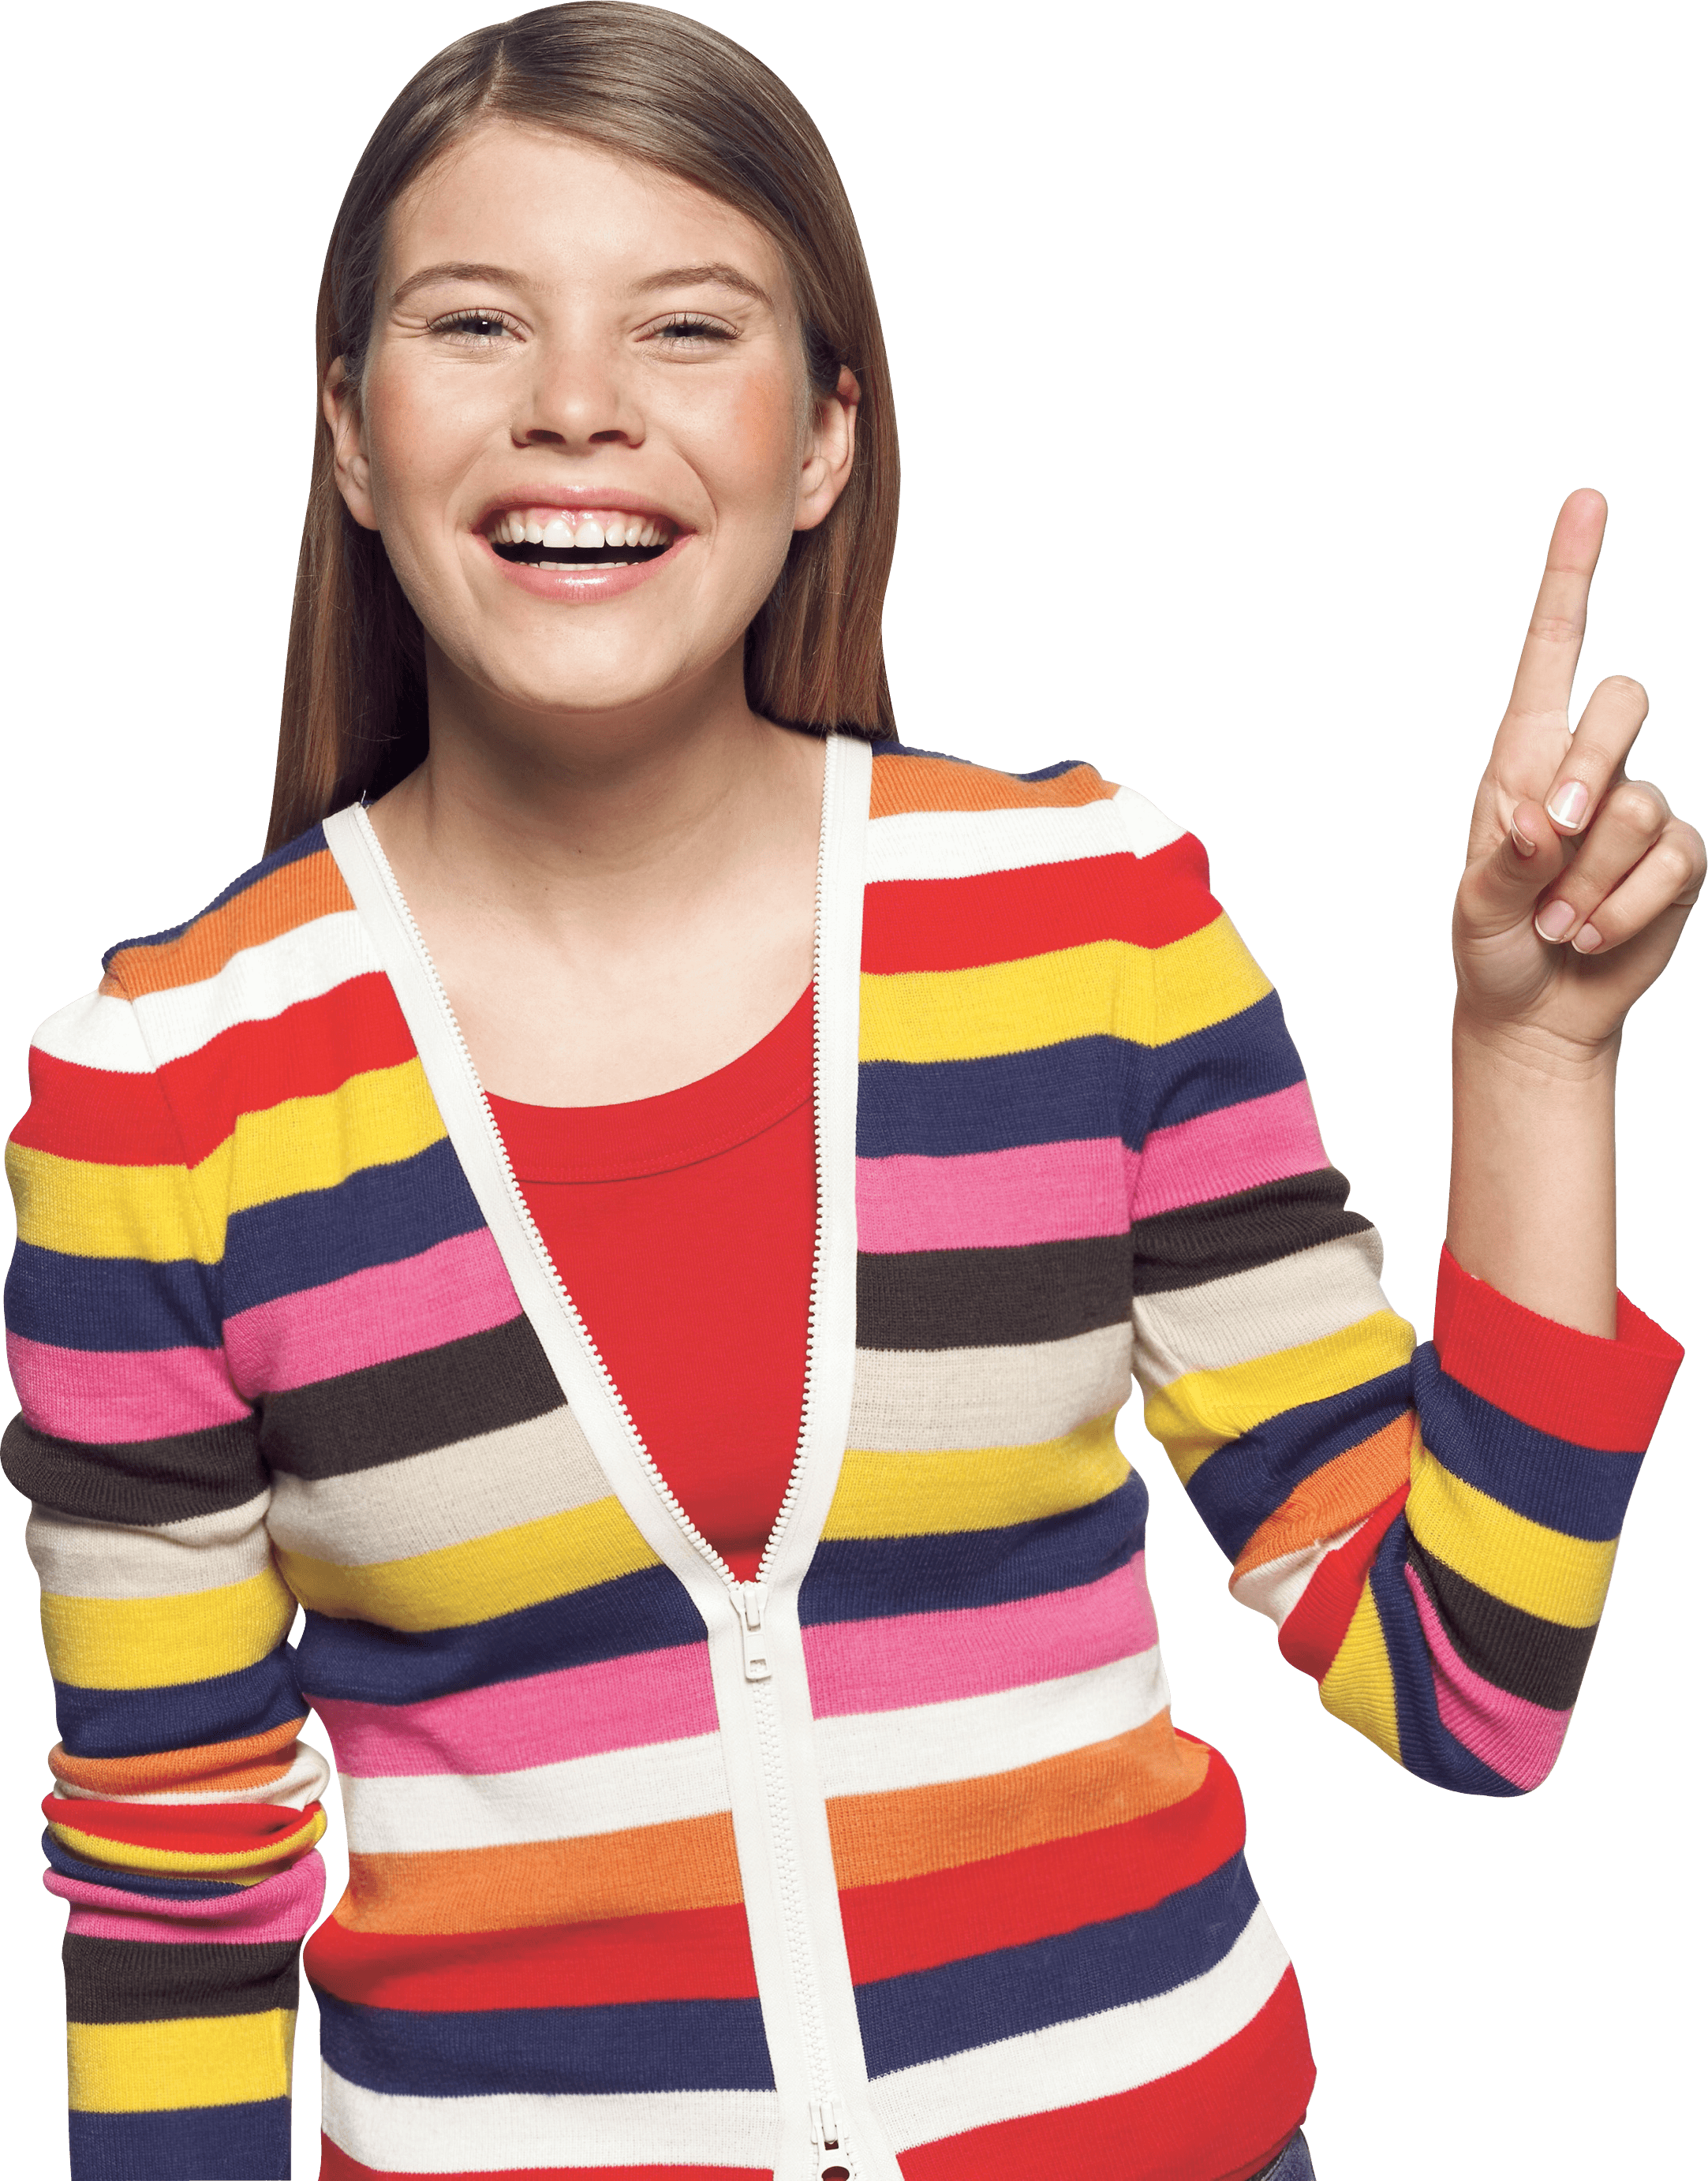 Top Girls PNG Images - Girl PNG